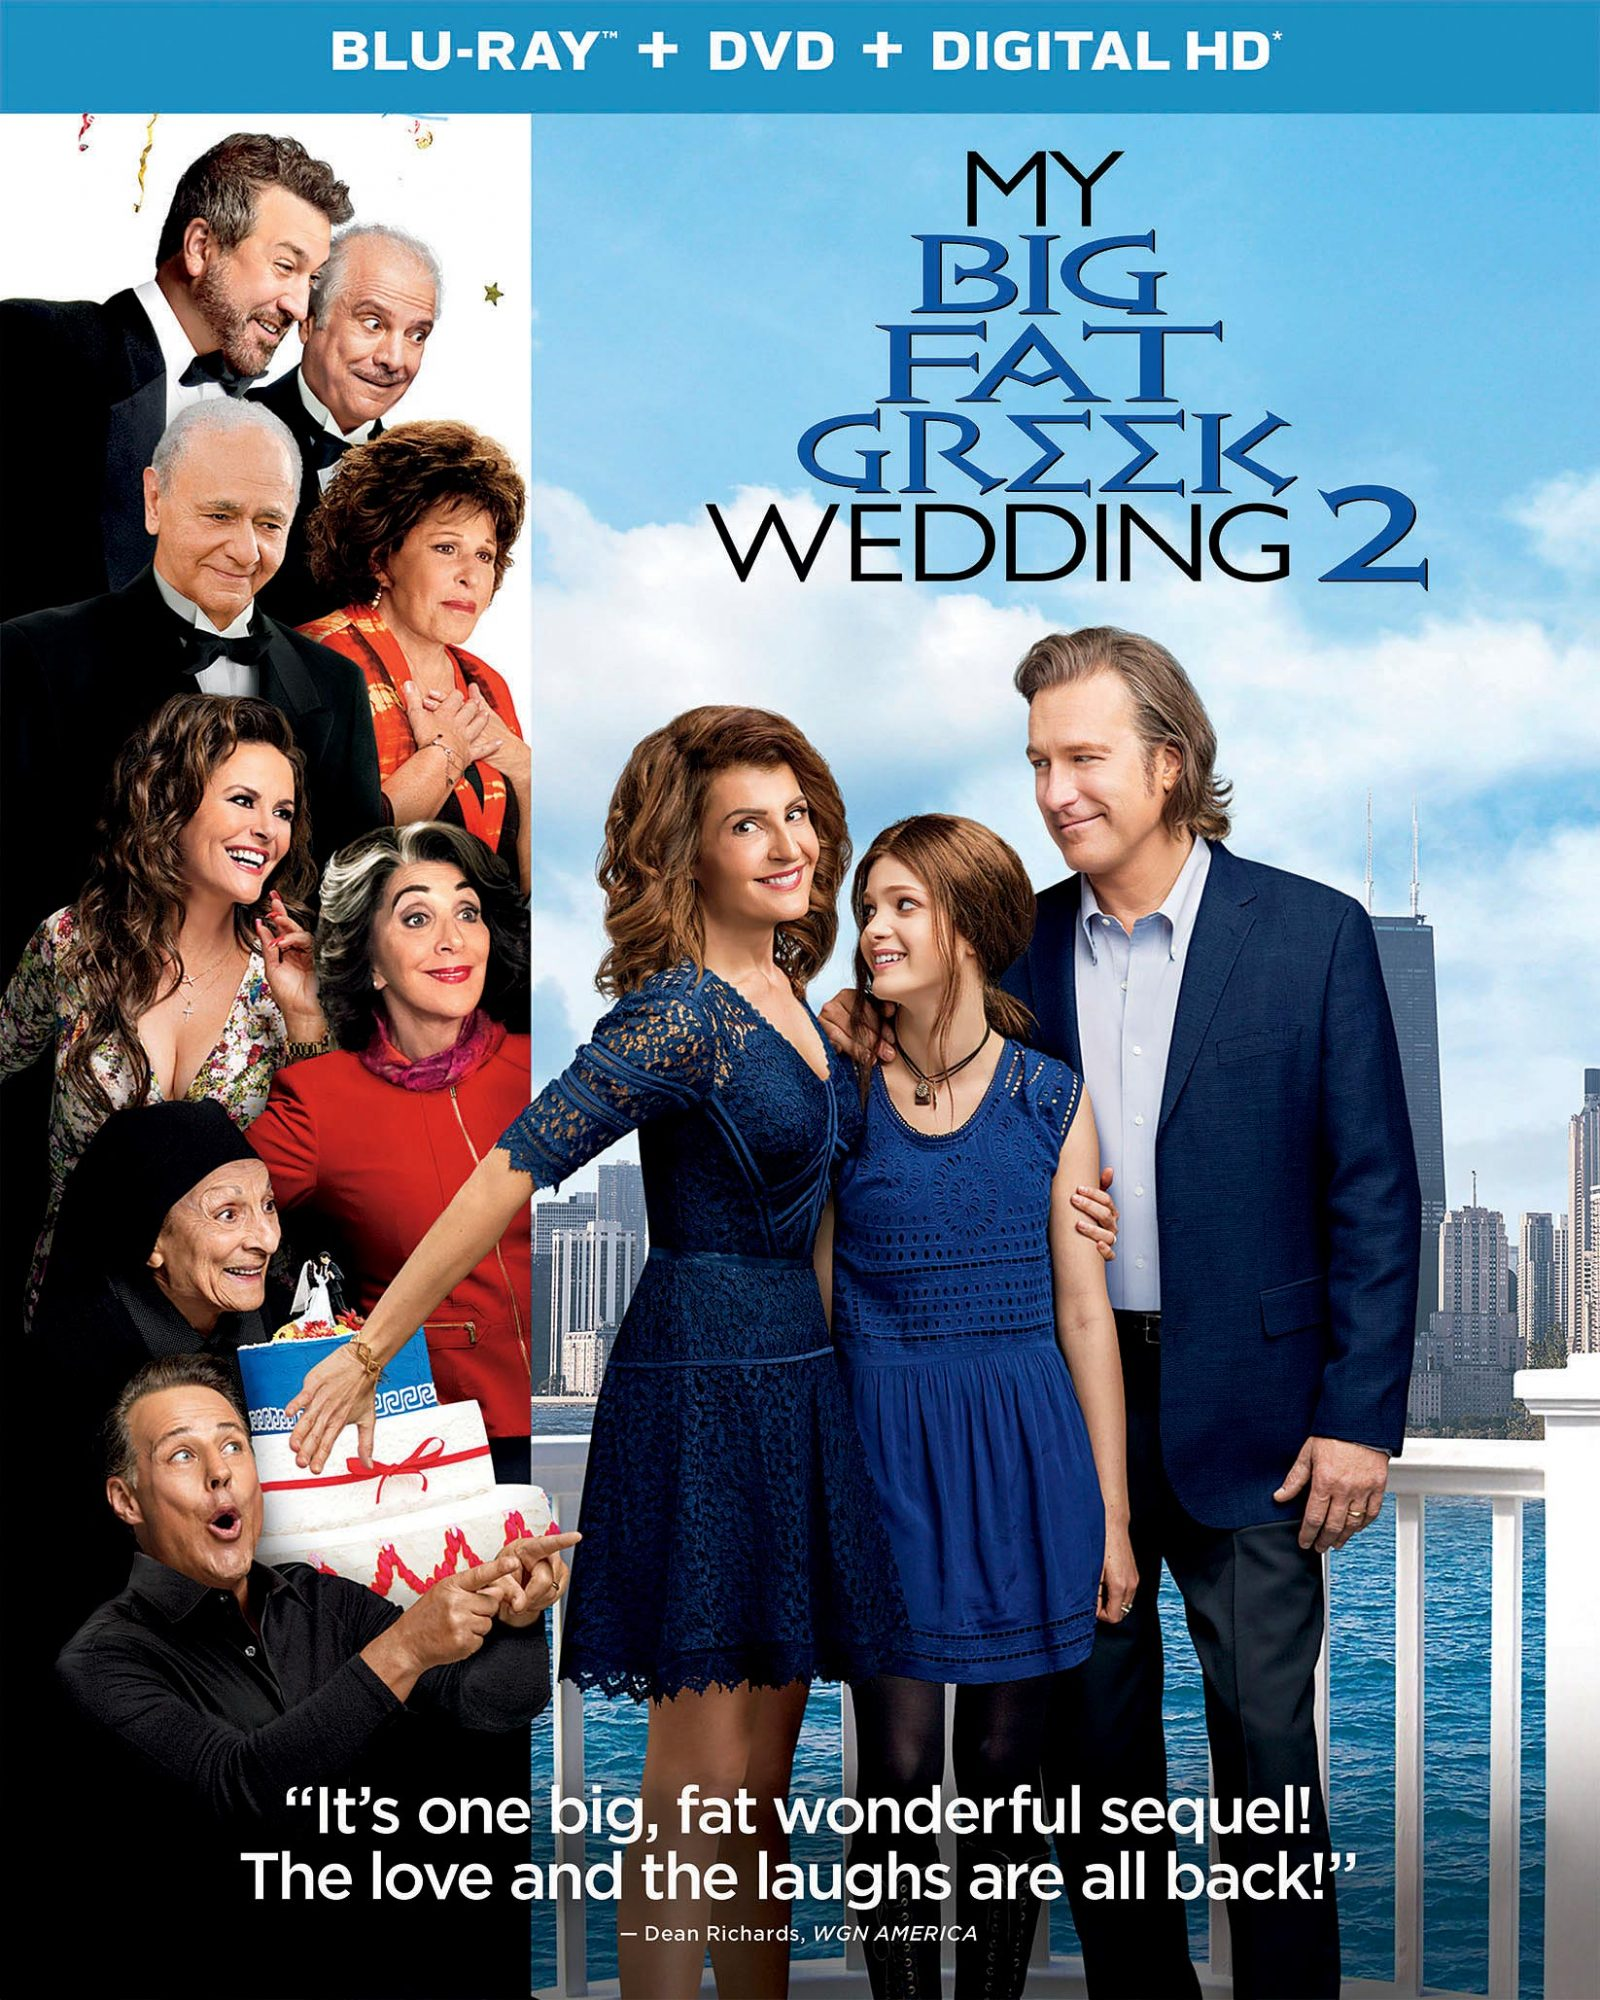 my-big-fat-greek-wedding-2-movie-0616.jpg